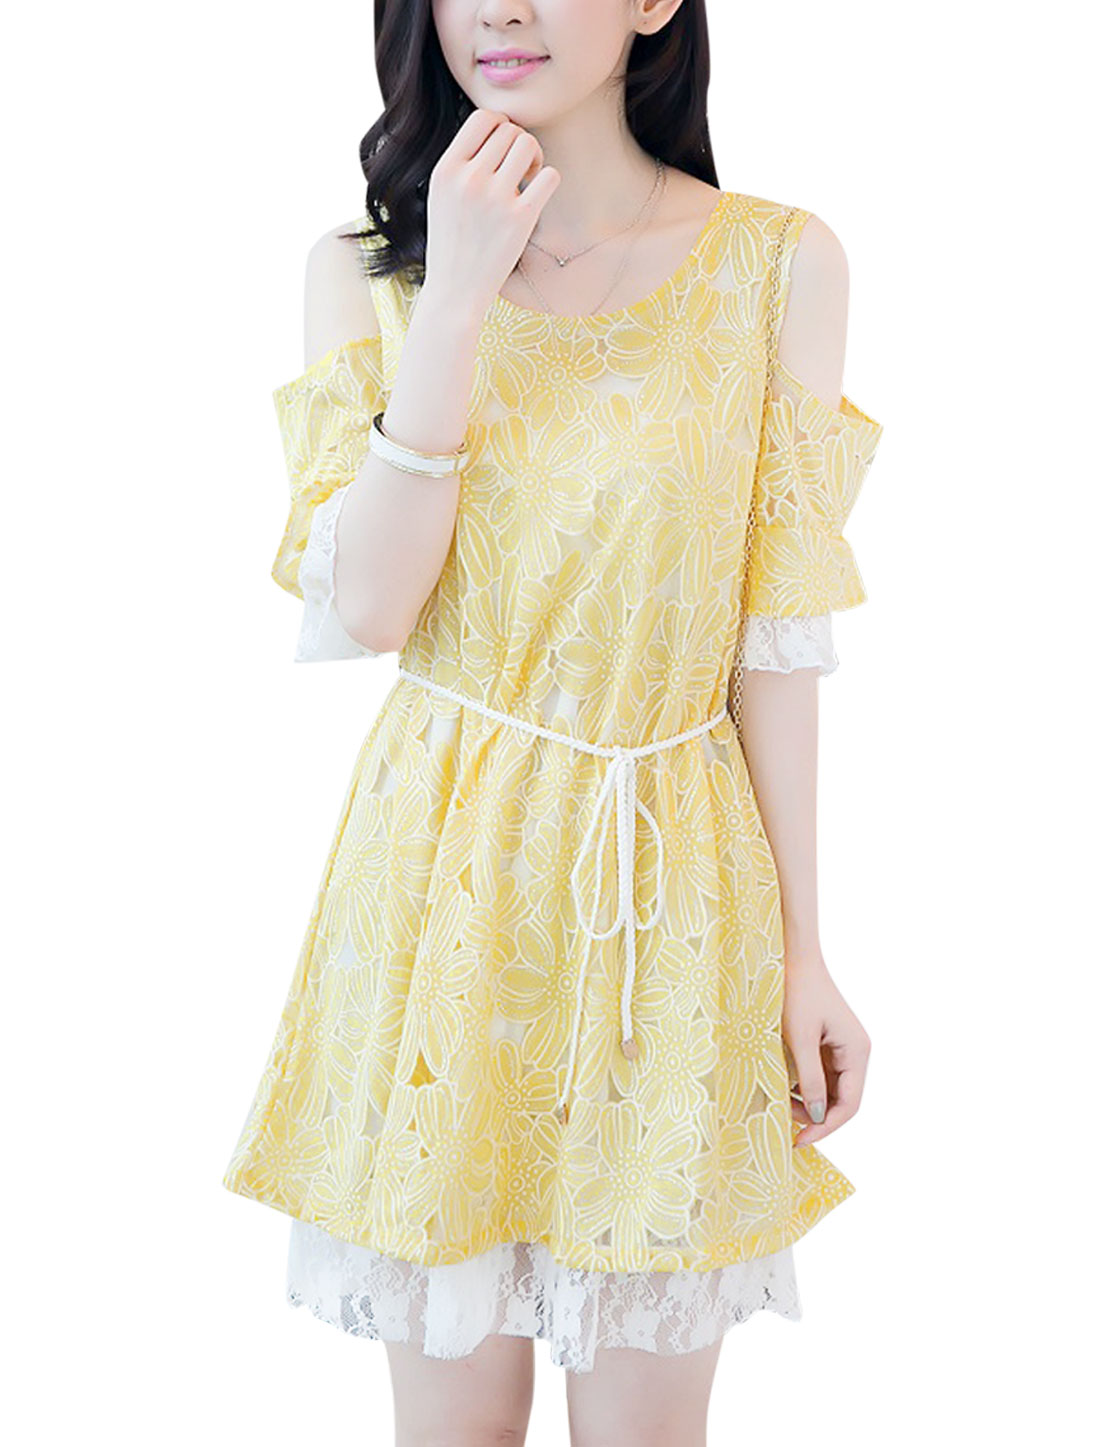 Lady Short Sleeve Cut Out Shoulder Flower Pattern Dress w Waist String Yellow M